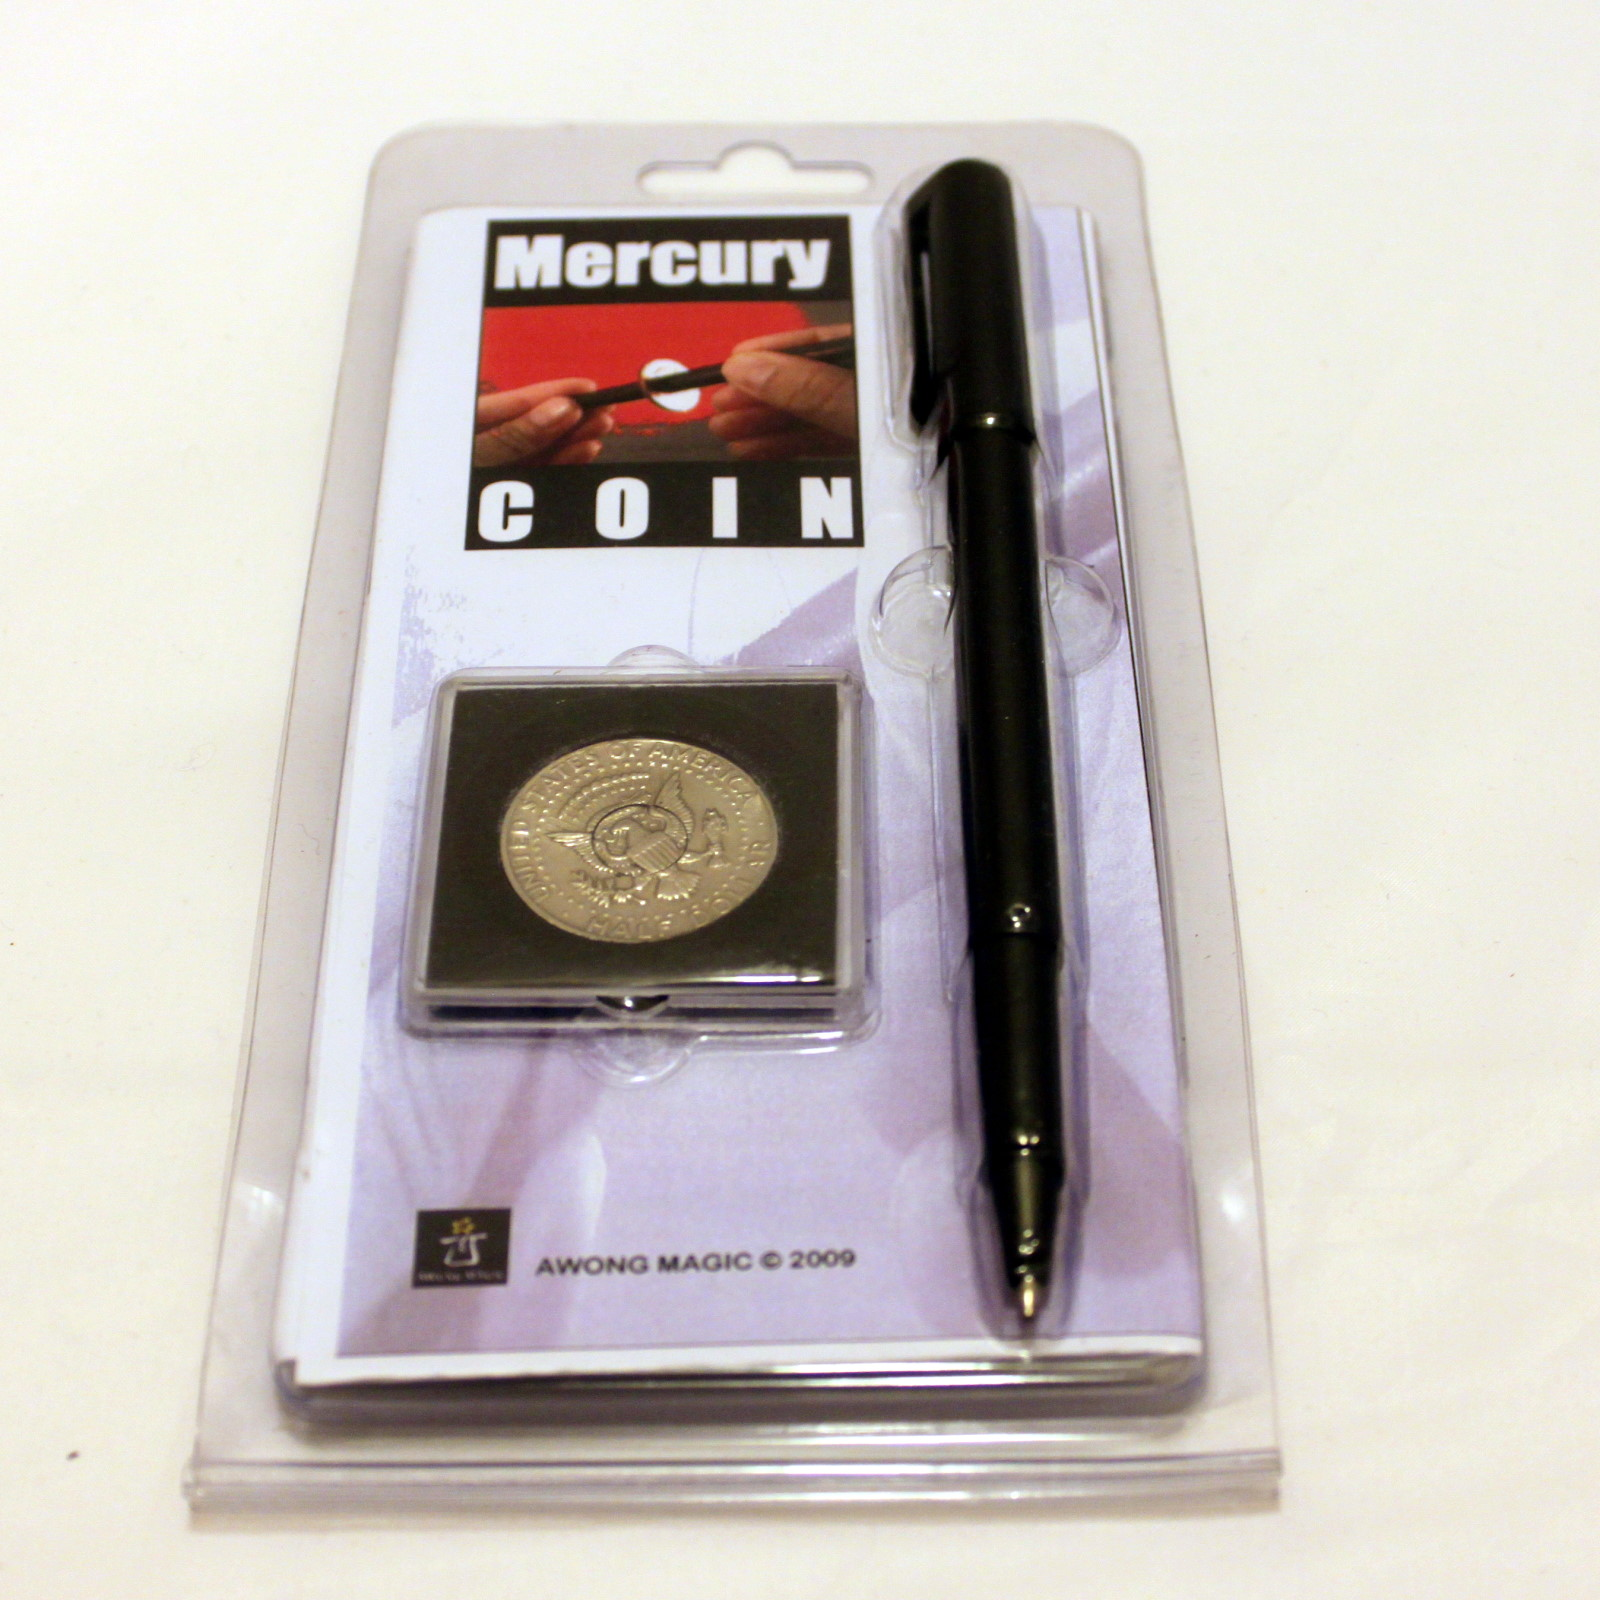 Mercury Coin by Alan Wong